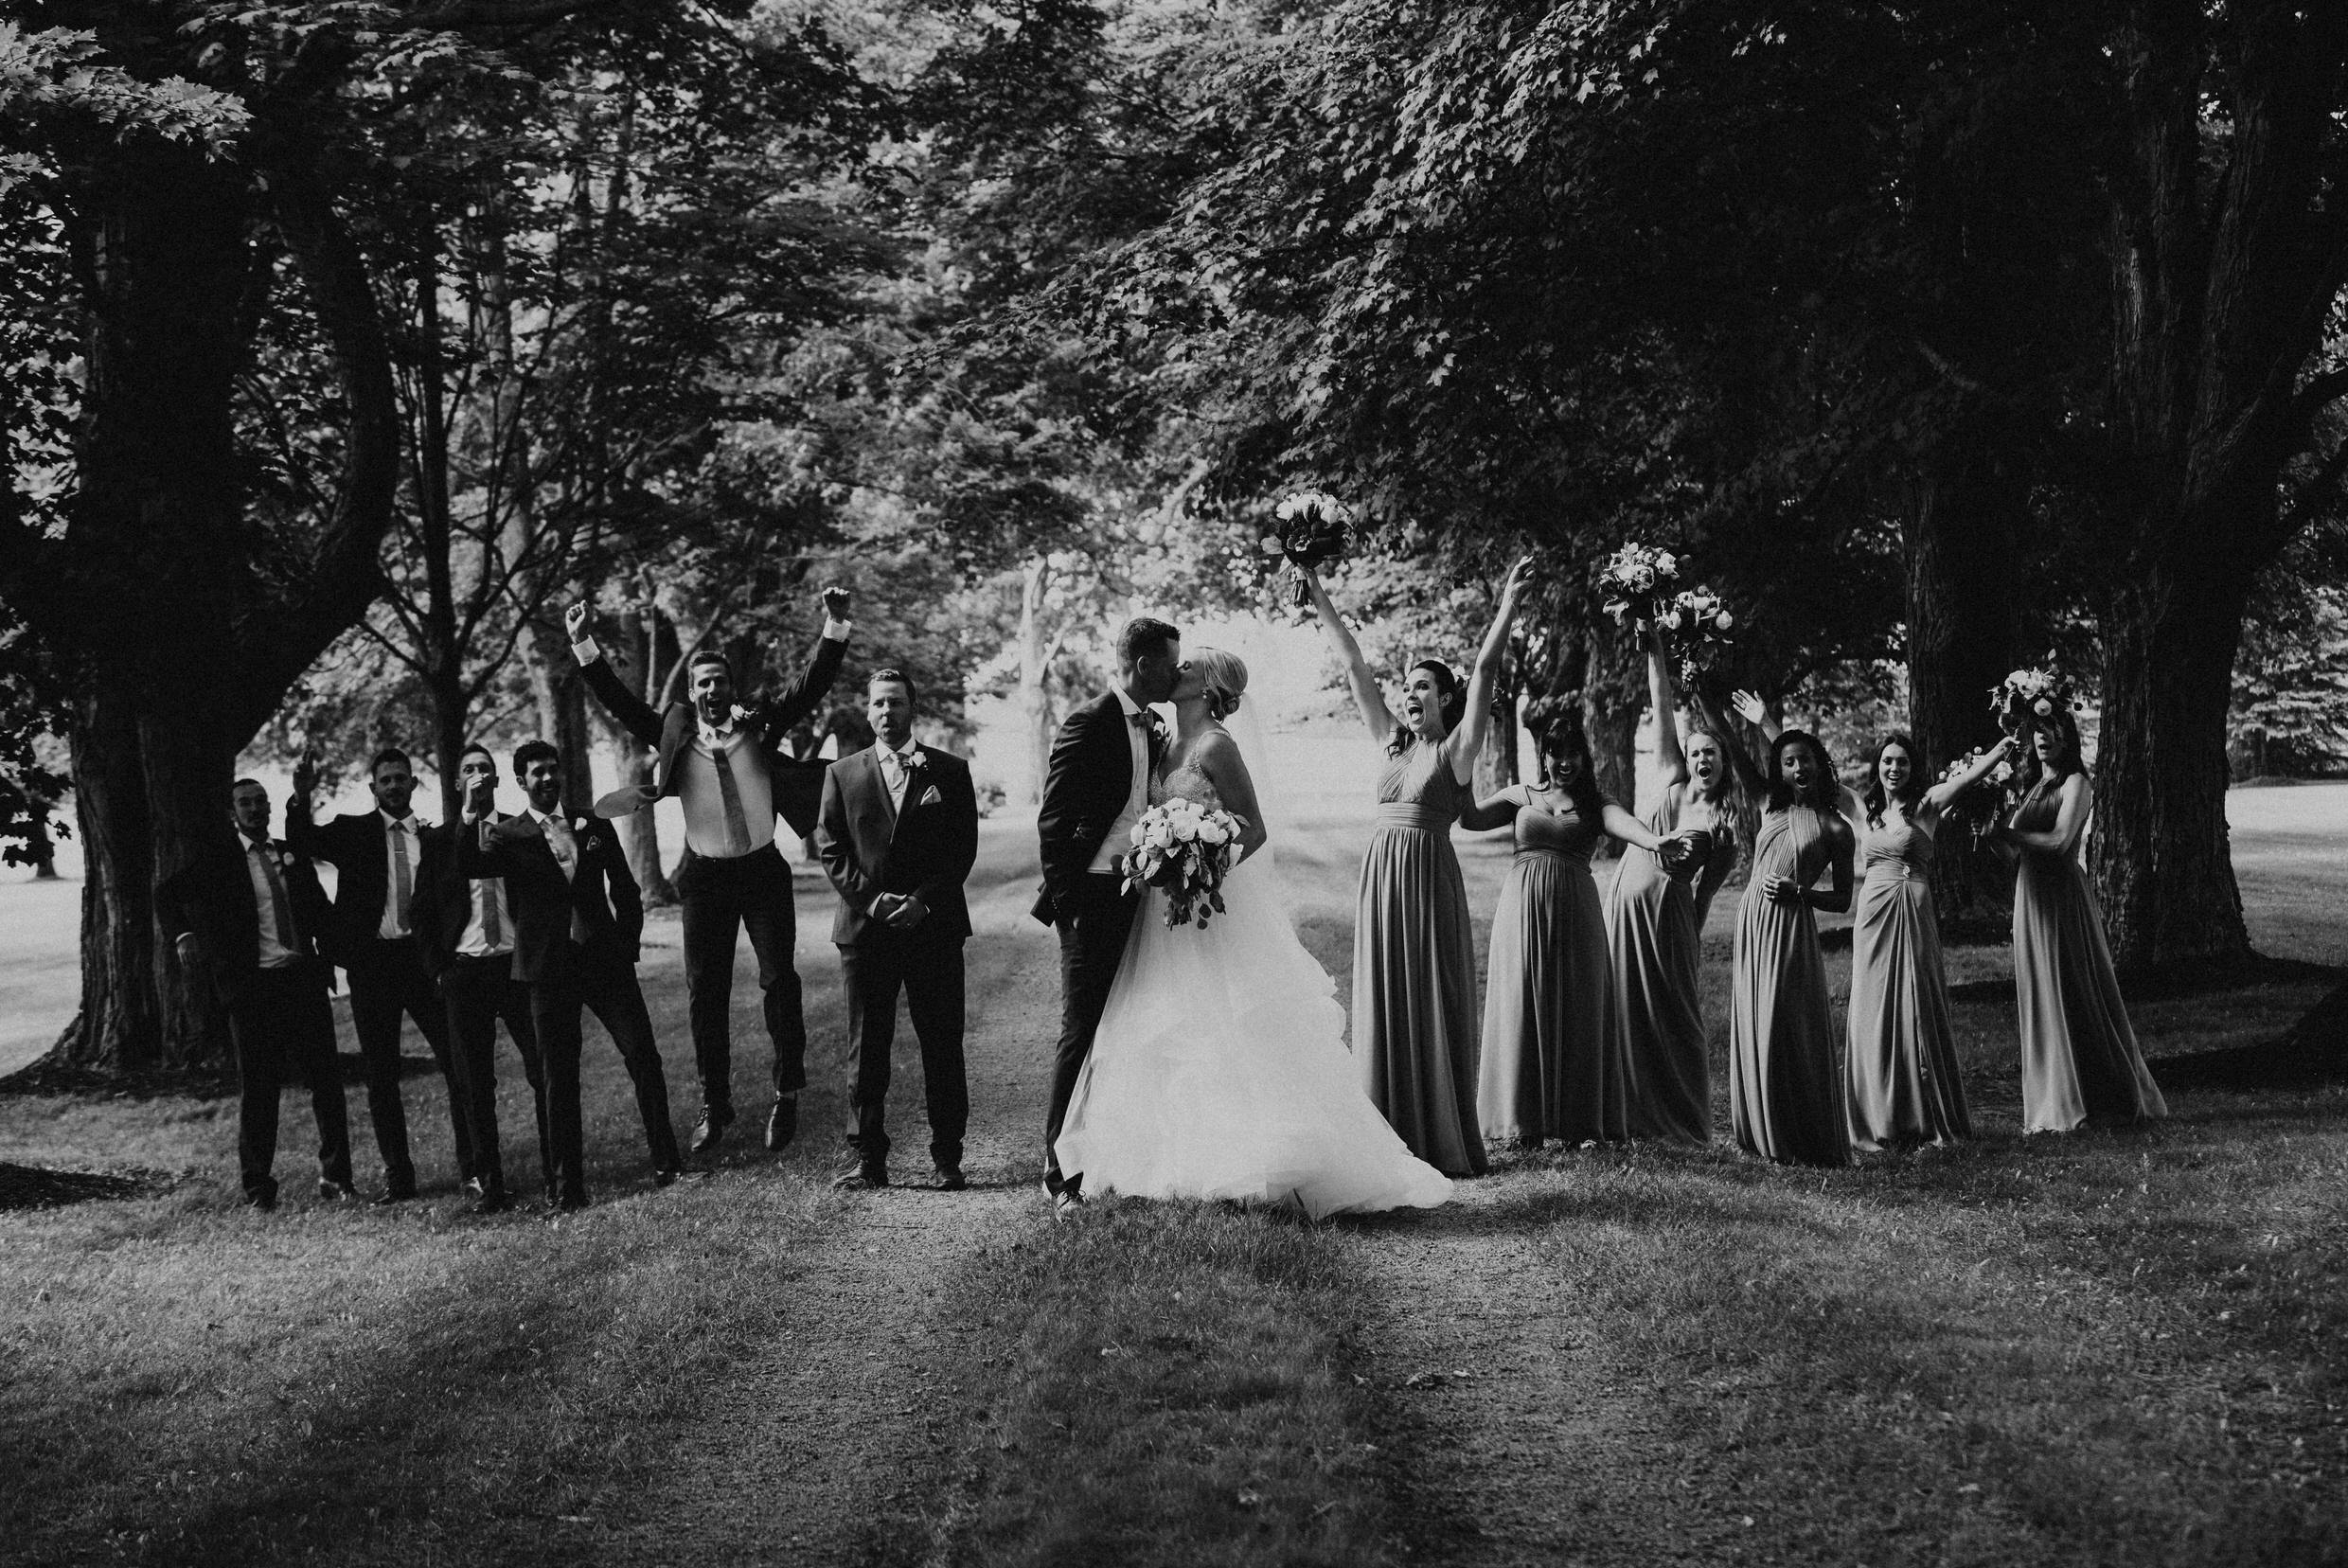 Belcroft Estates Wedding - wedding party in the woods